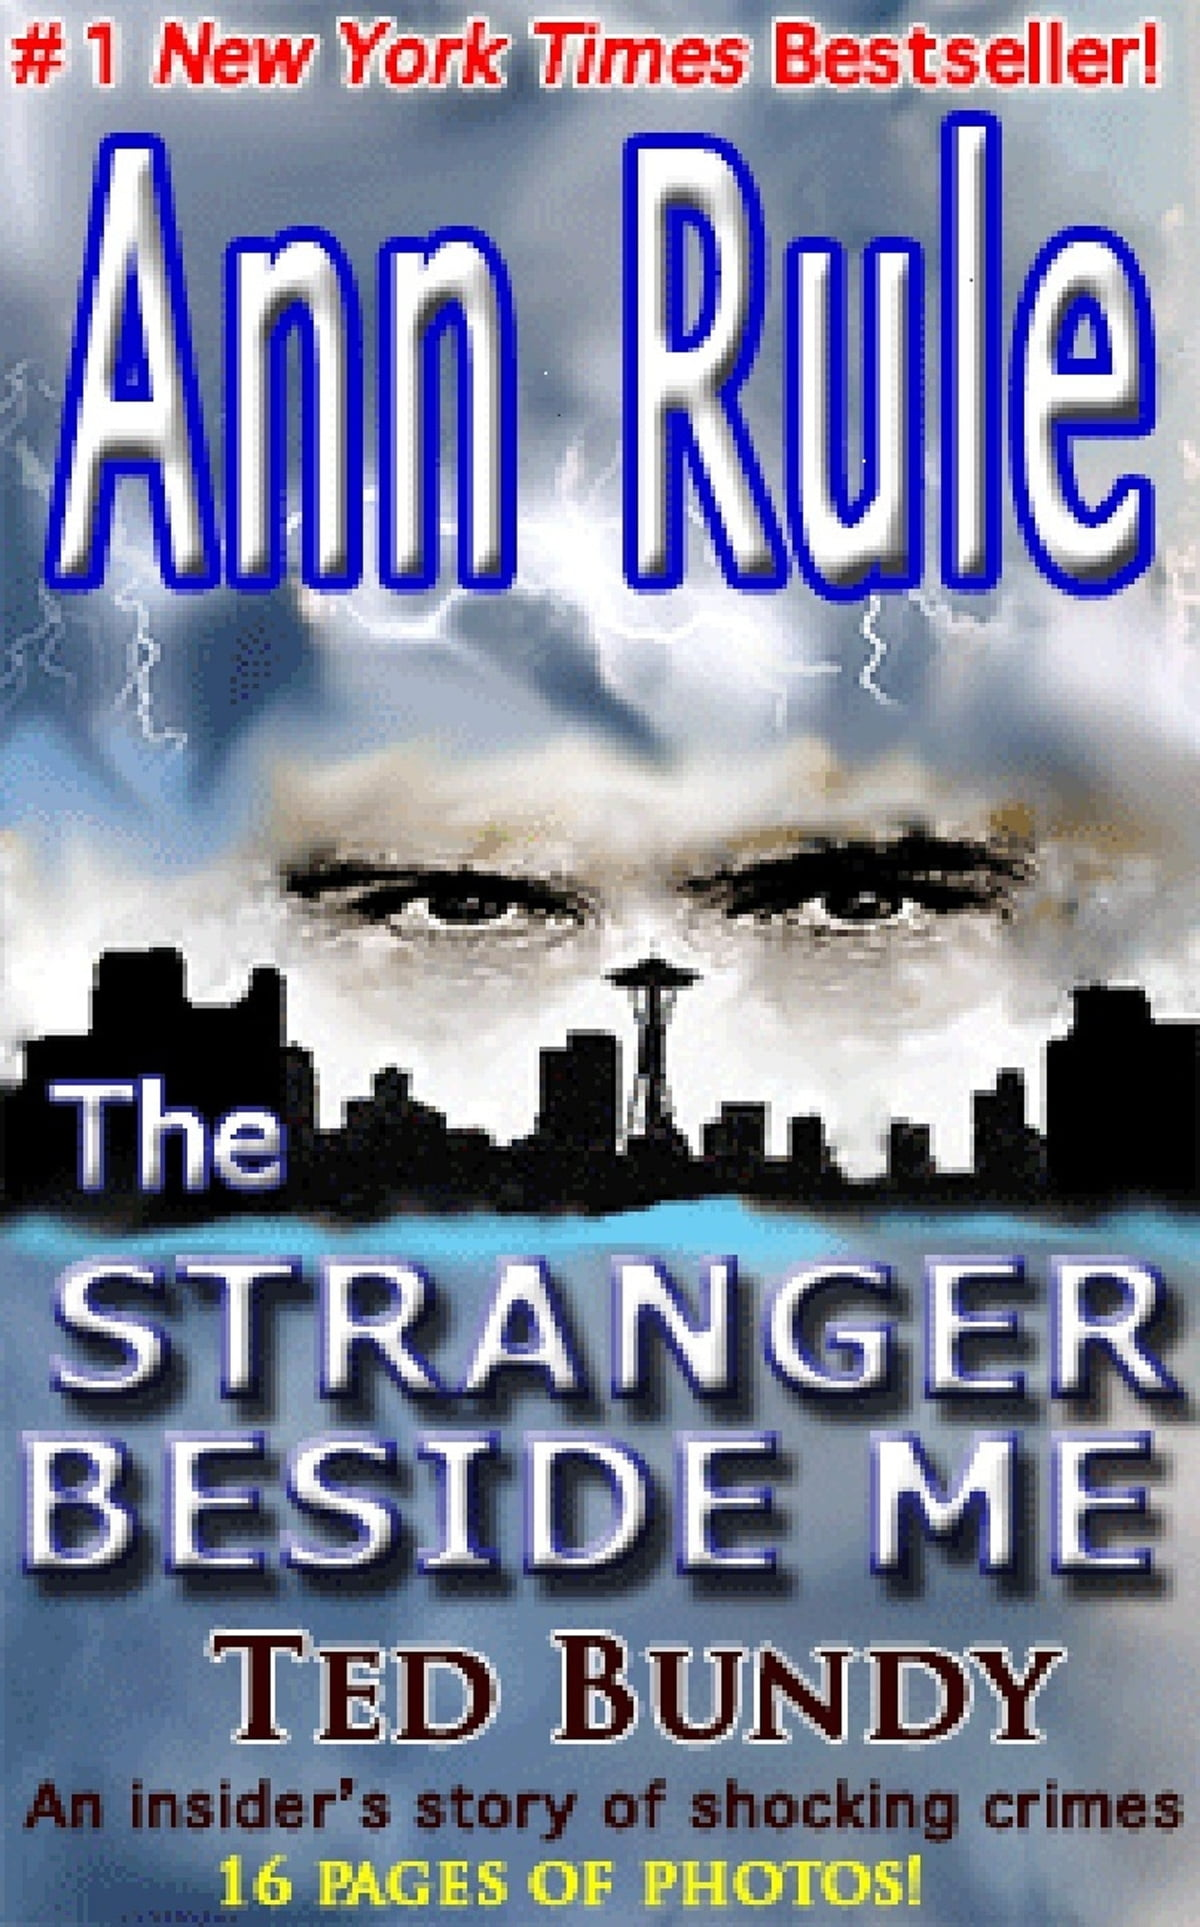 The Stranger Beside Me Ebook By Ann Rule The Stranger Beside Me Ann Rule  $799 · 102 Minutes  The Unforgettable Story Of The Fight To Survive Inside